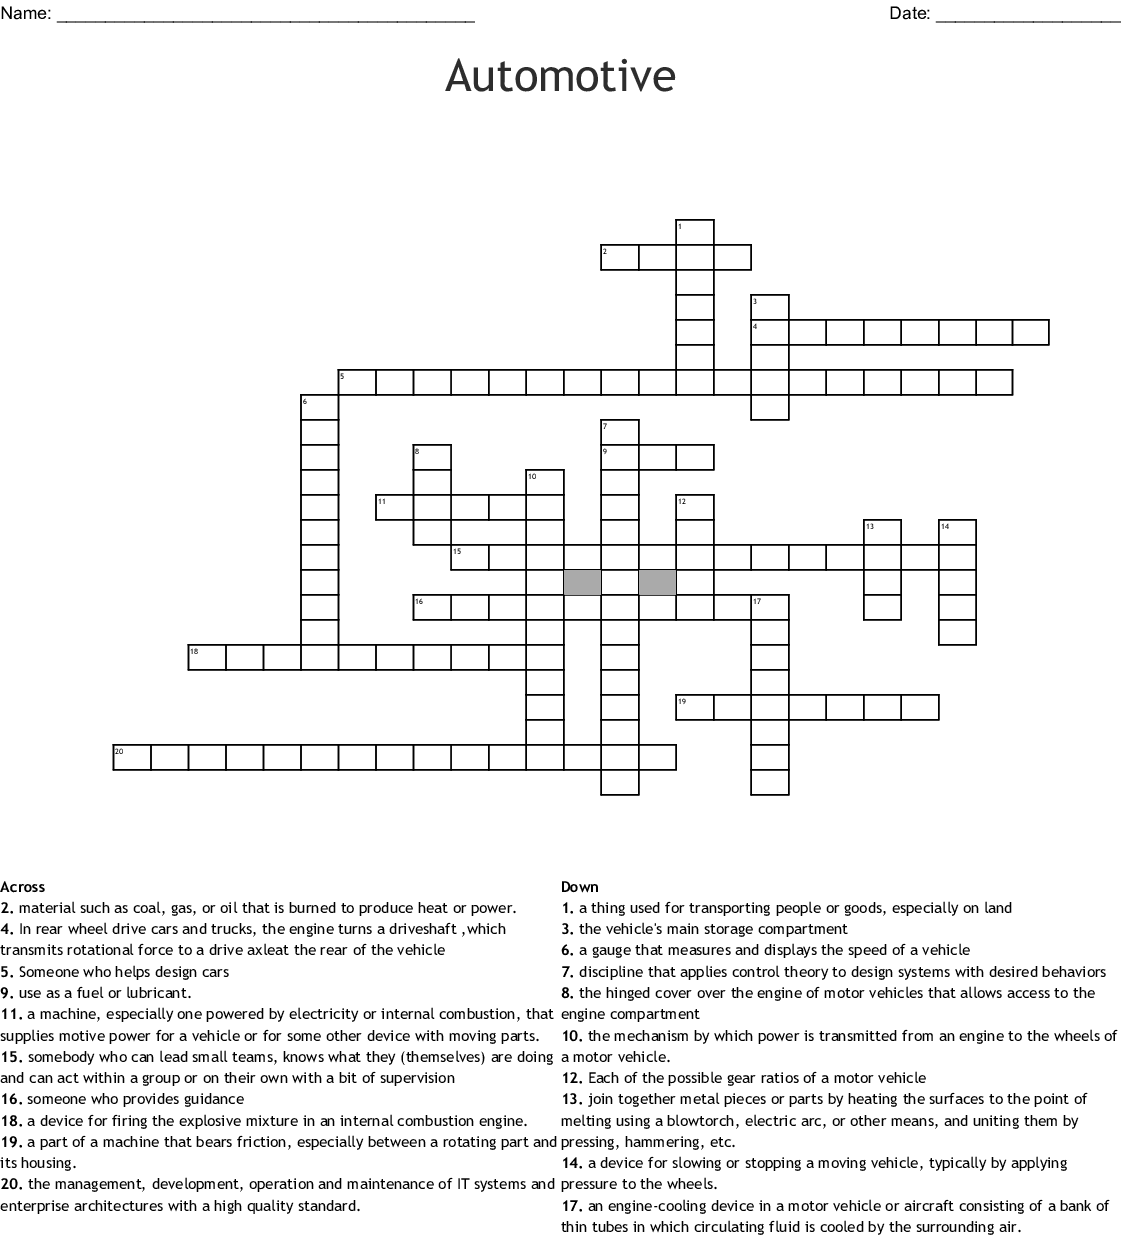 Automotive Crossword Wordmint